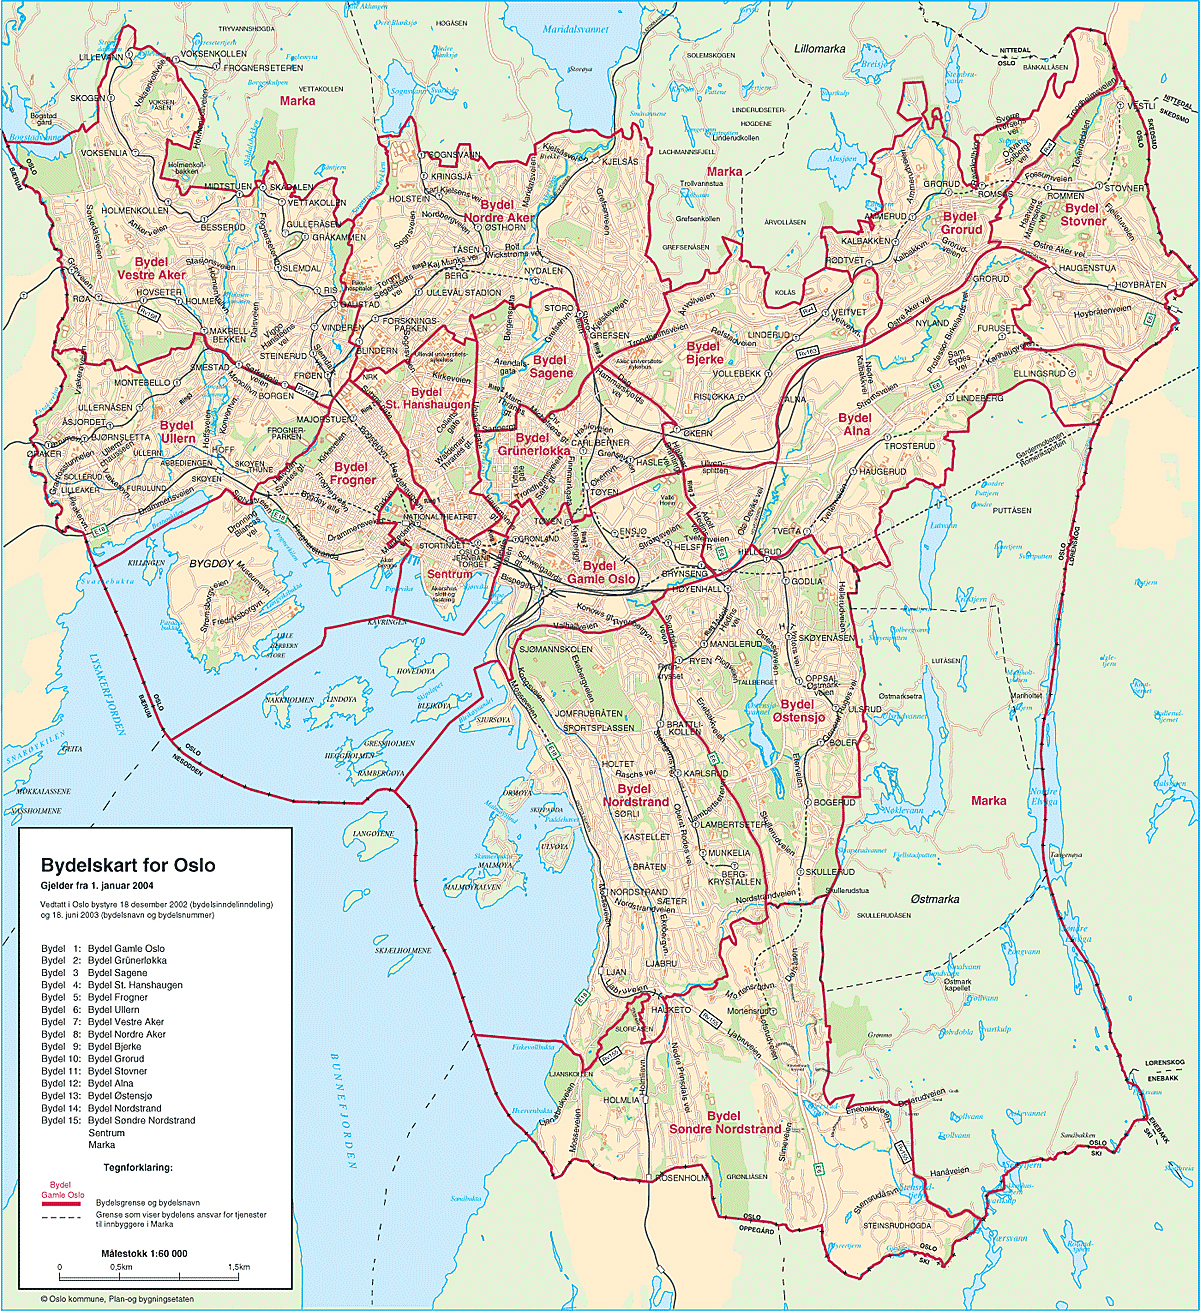 Large Detailed Neighborhood Map Of Oslo City Oslo City Large - Norway map detailed